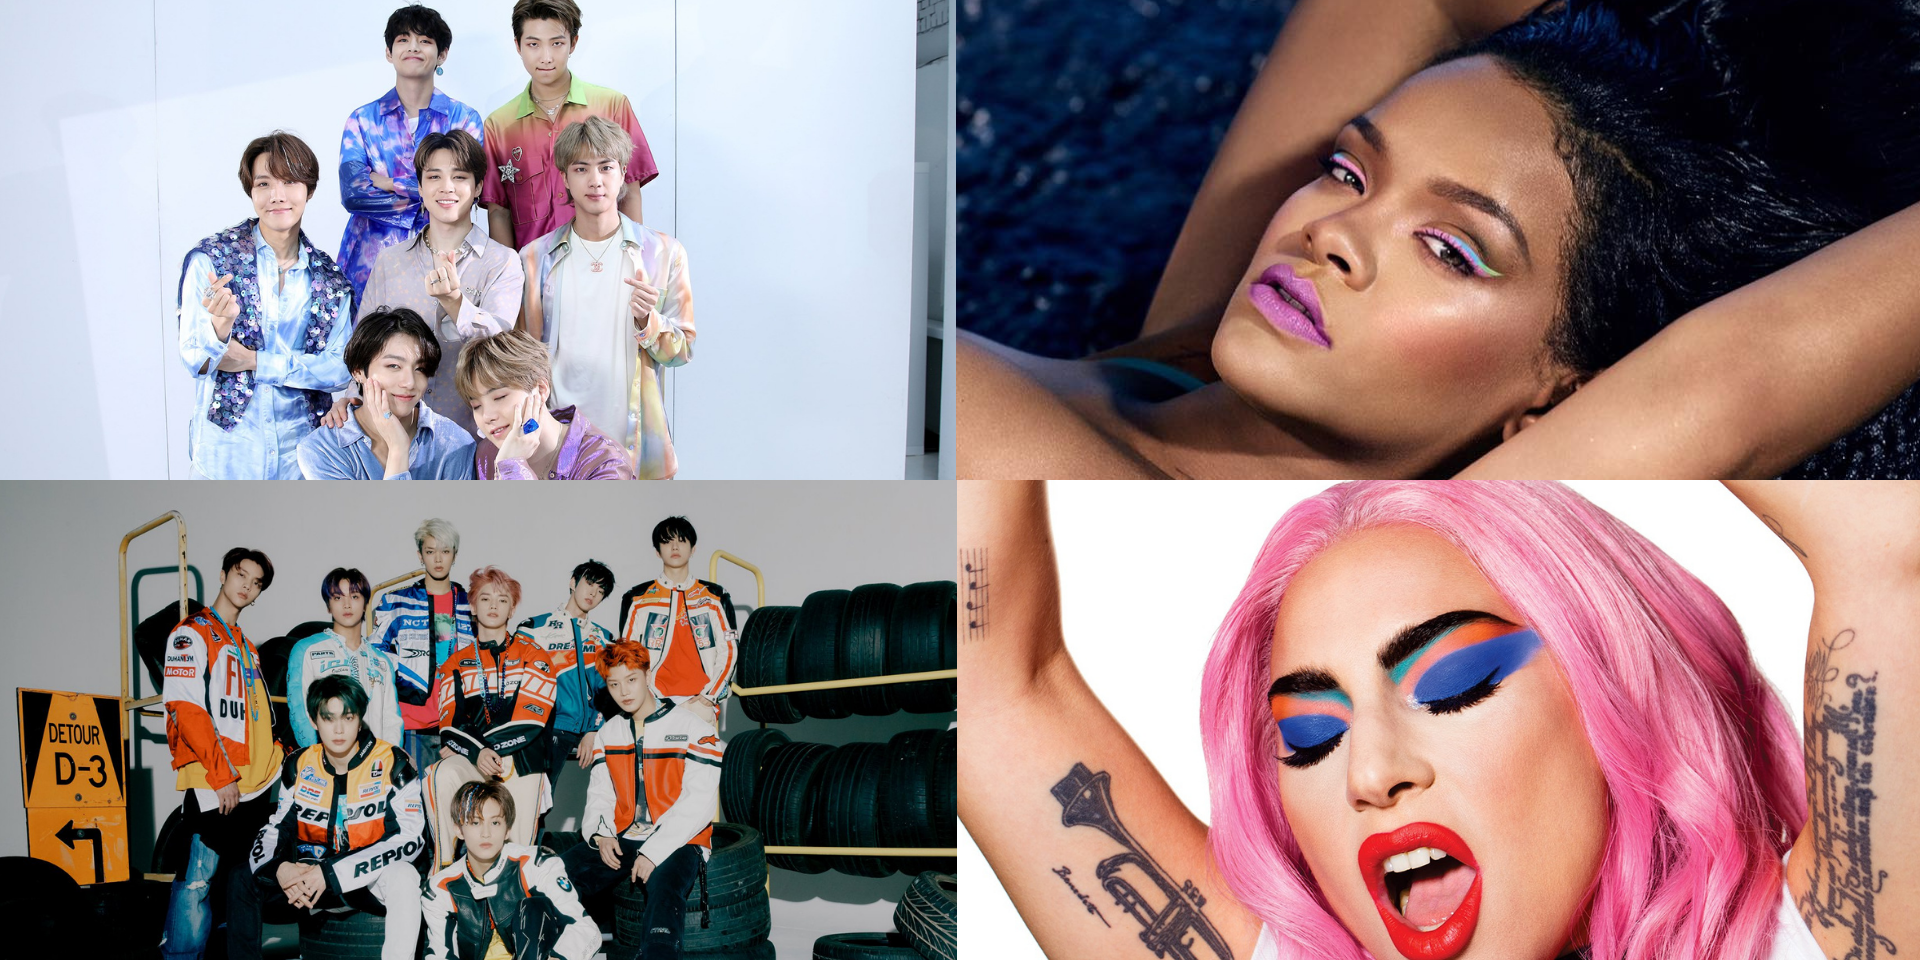 8 beauty collections by musicians: Rihanna, Lady Gaga, BTS, NCT 127, and more